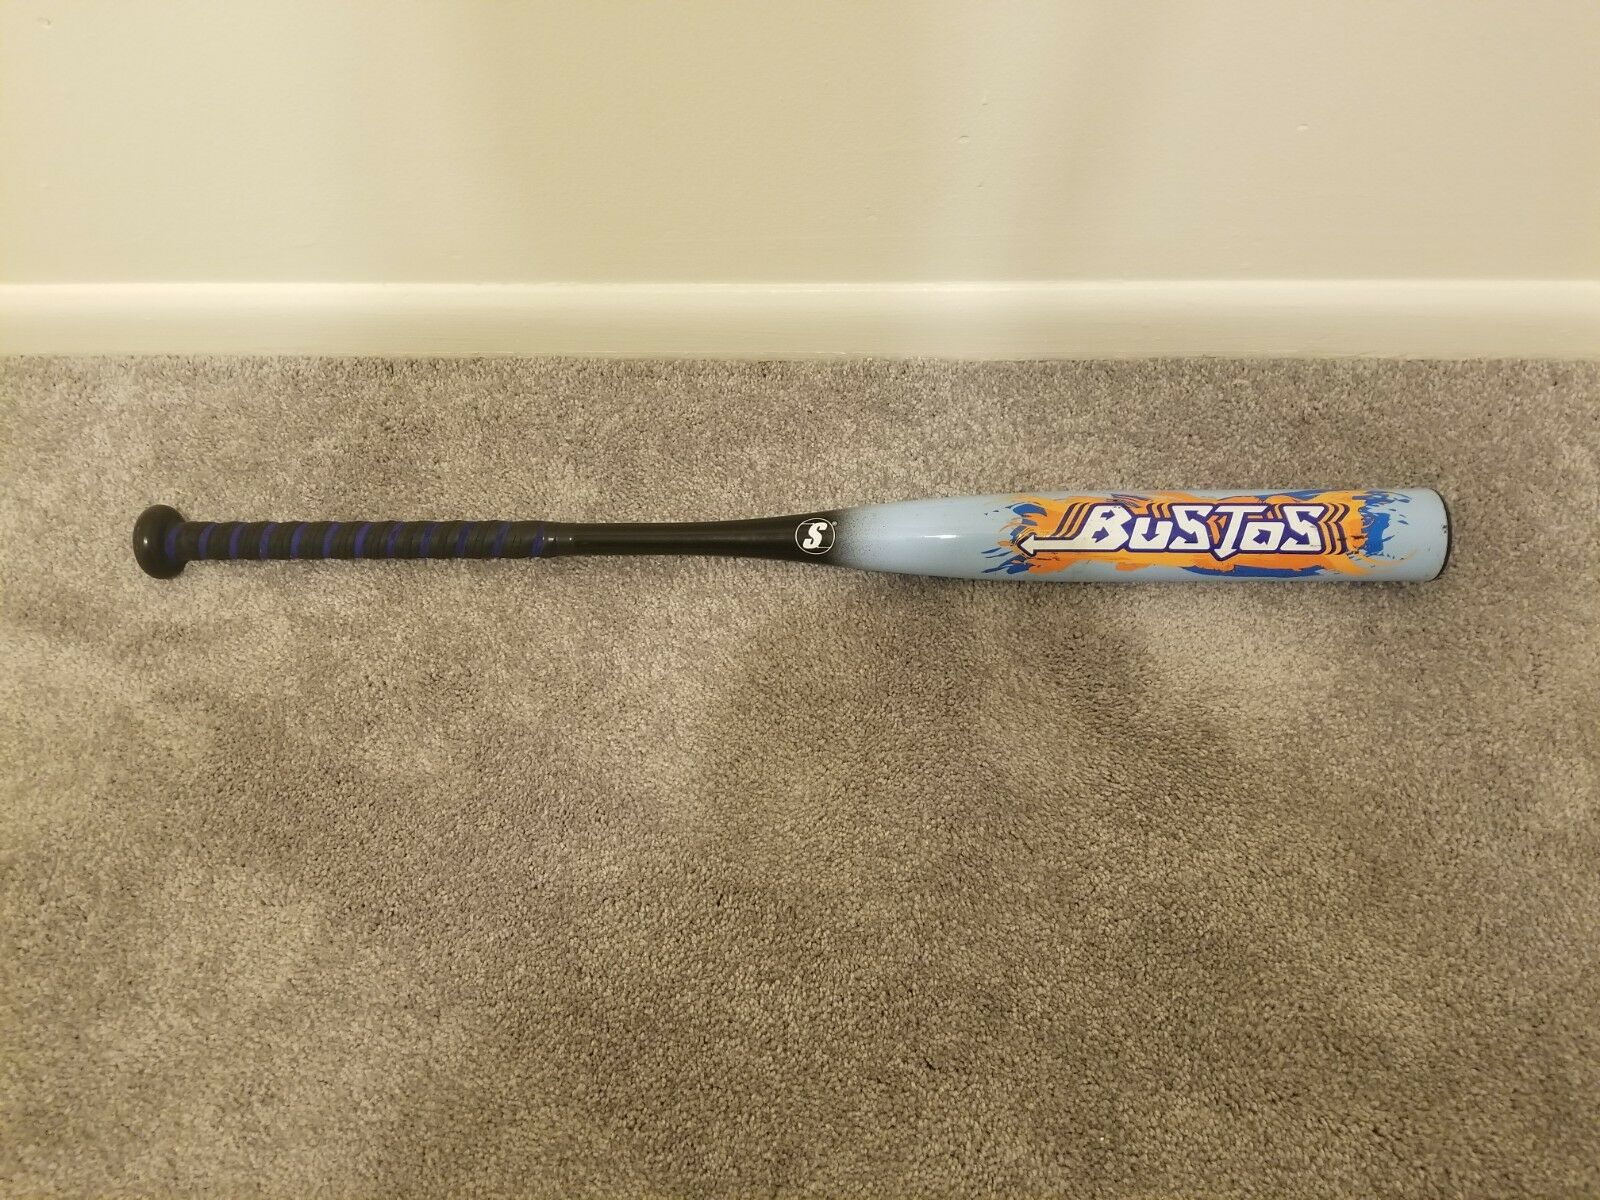 SCHUTT Bustos softball bat Trebon Technology 32 32 Technology inch and 22 oz (Made in Canada) ecaace